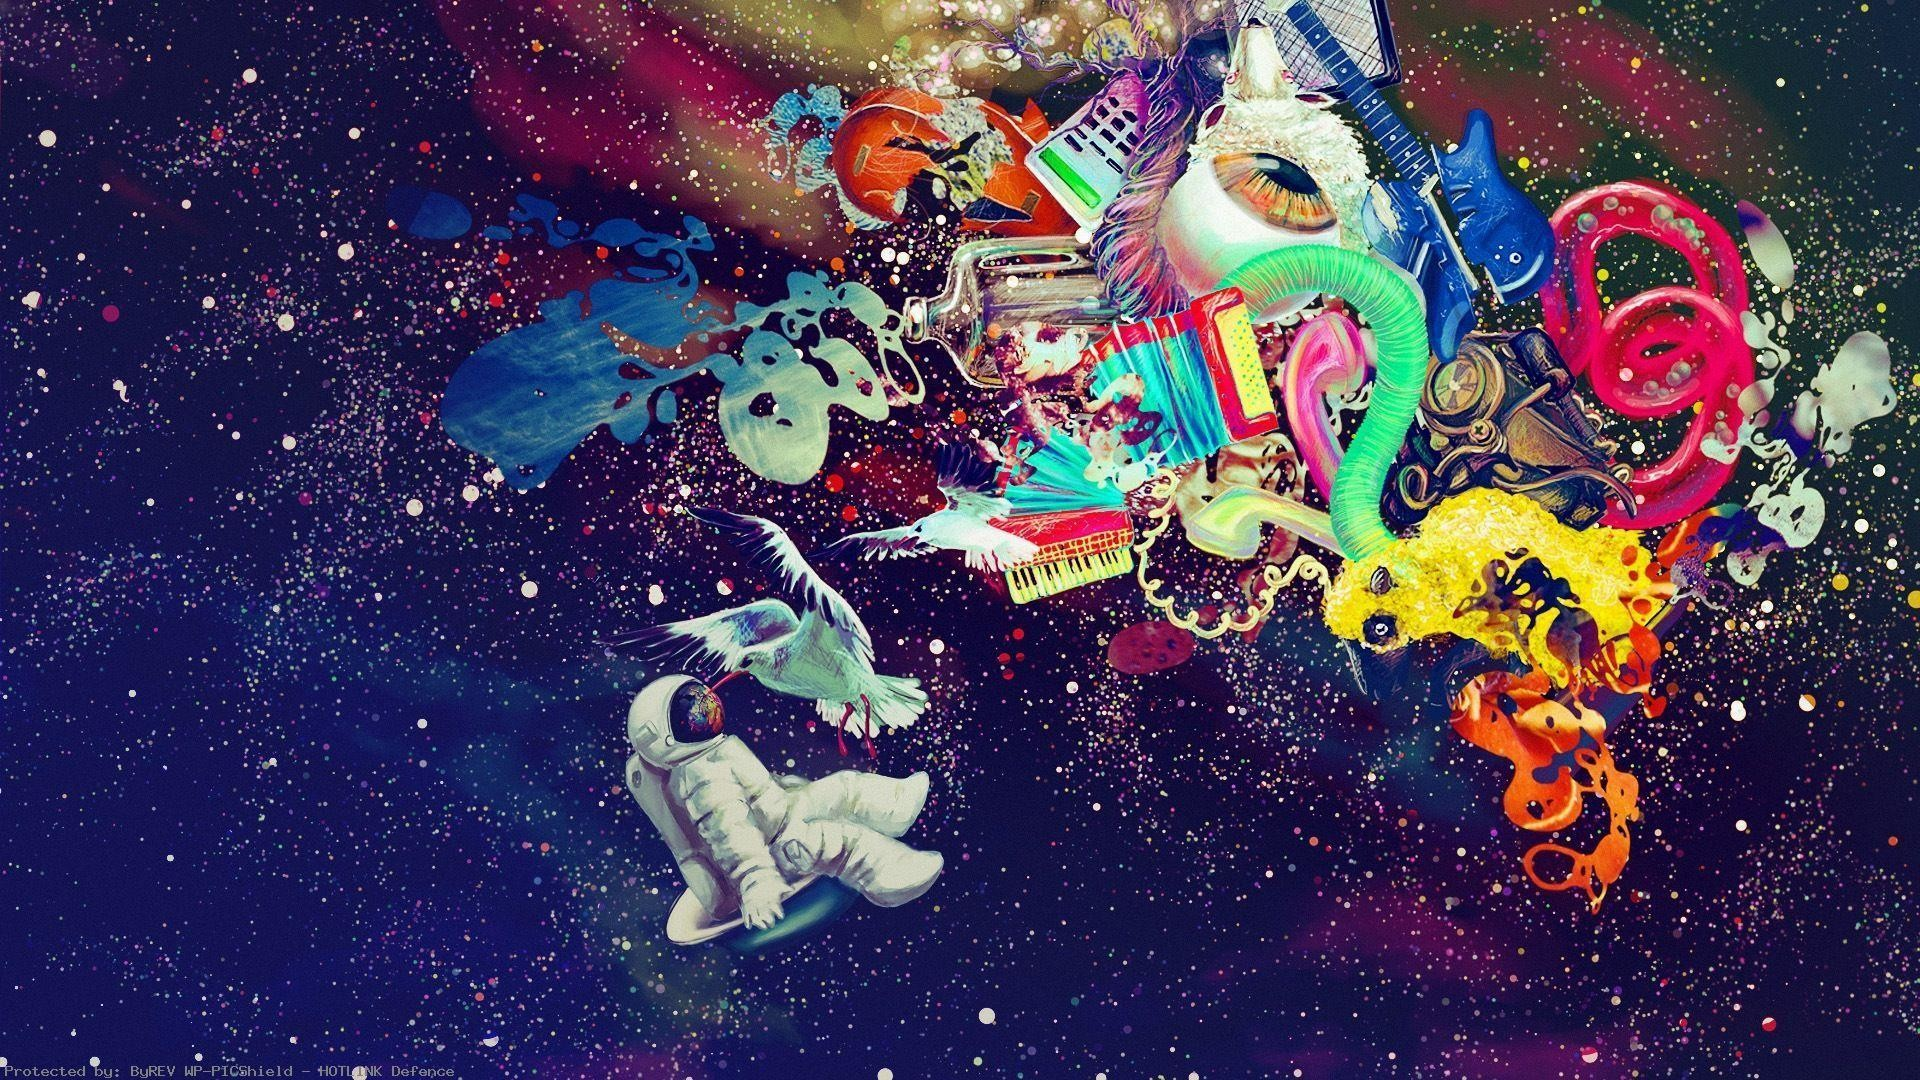 1920x1080 Trippy-Hd-Tumblr-trippy-space-cave-wallpaper-wp38011402